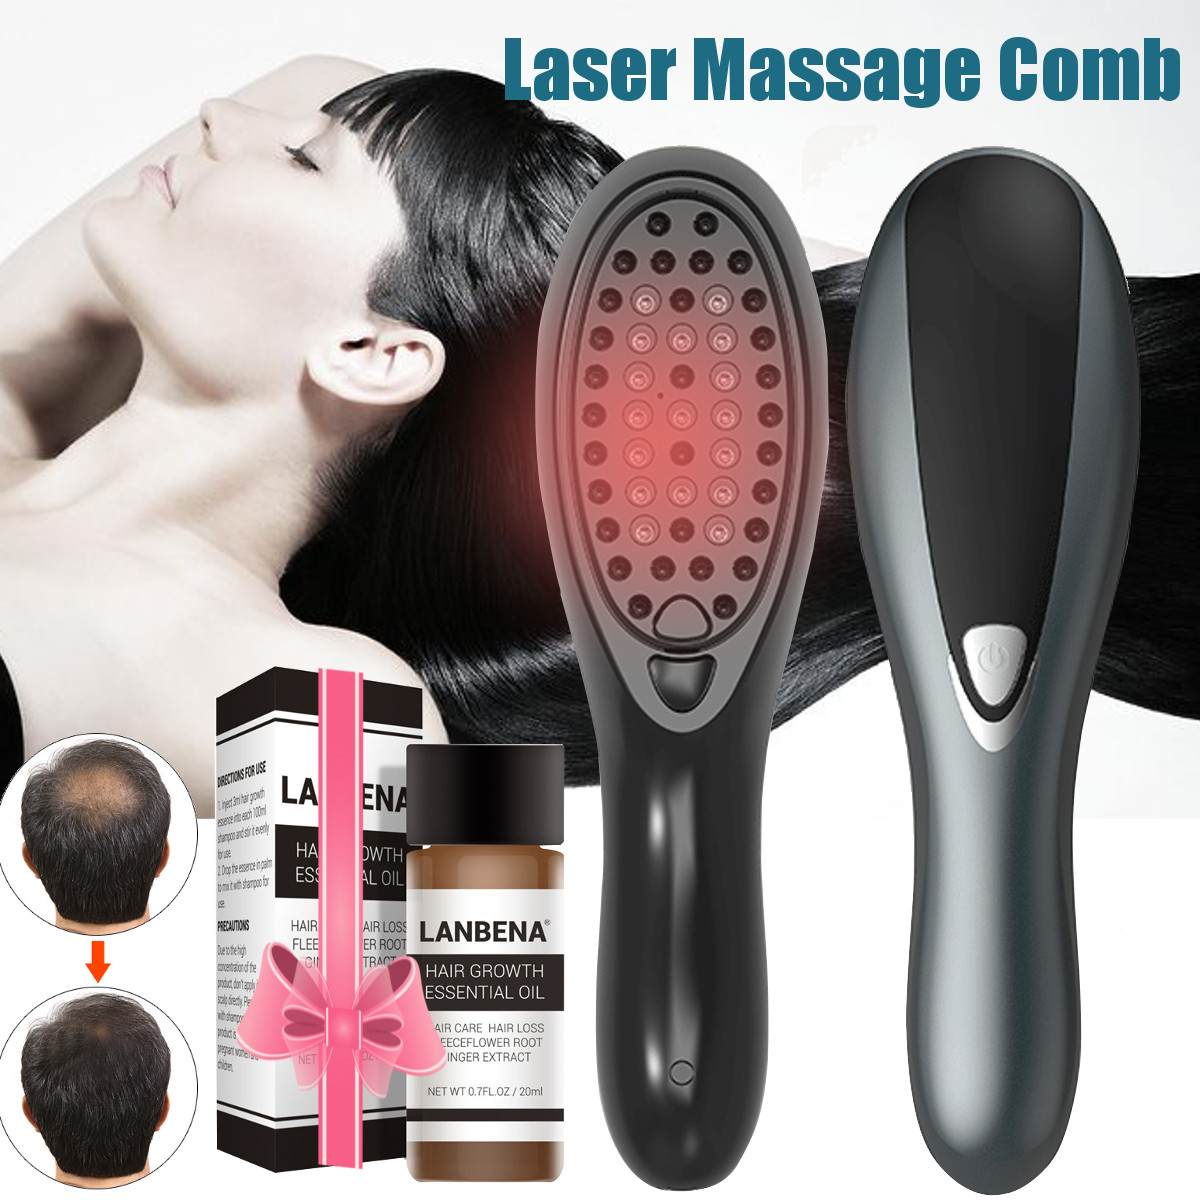 Newest Electric Laser Antistatic Anti-Hair Loss Scalp Massage Comb Brush Hair Growth Regrowth Comb Styling Tool Drop Shipping